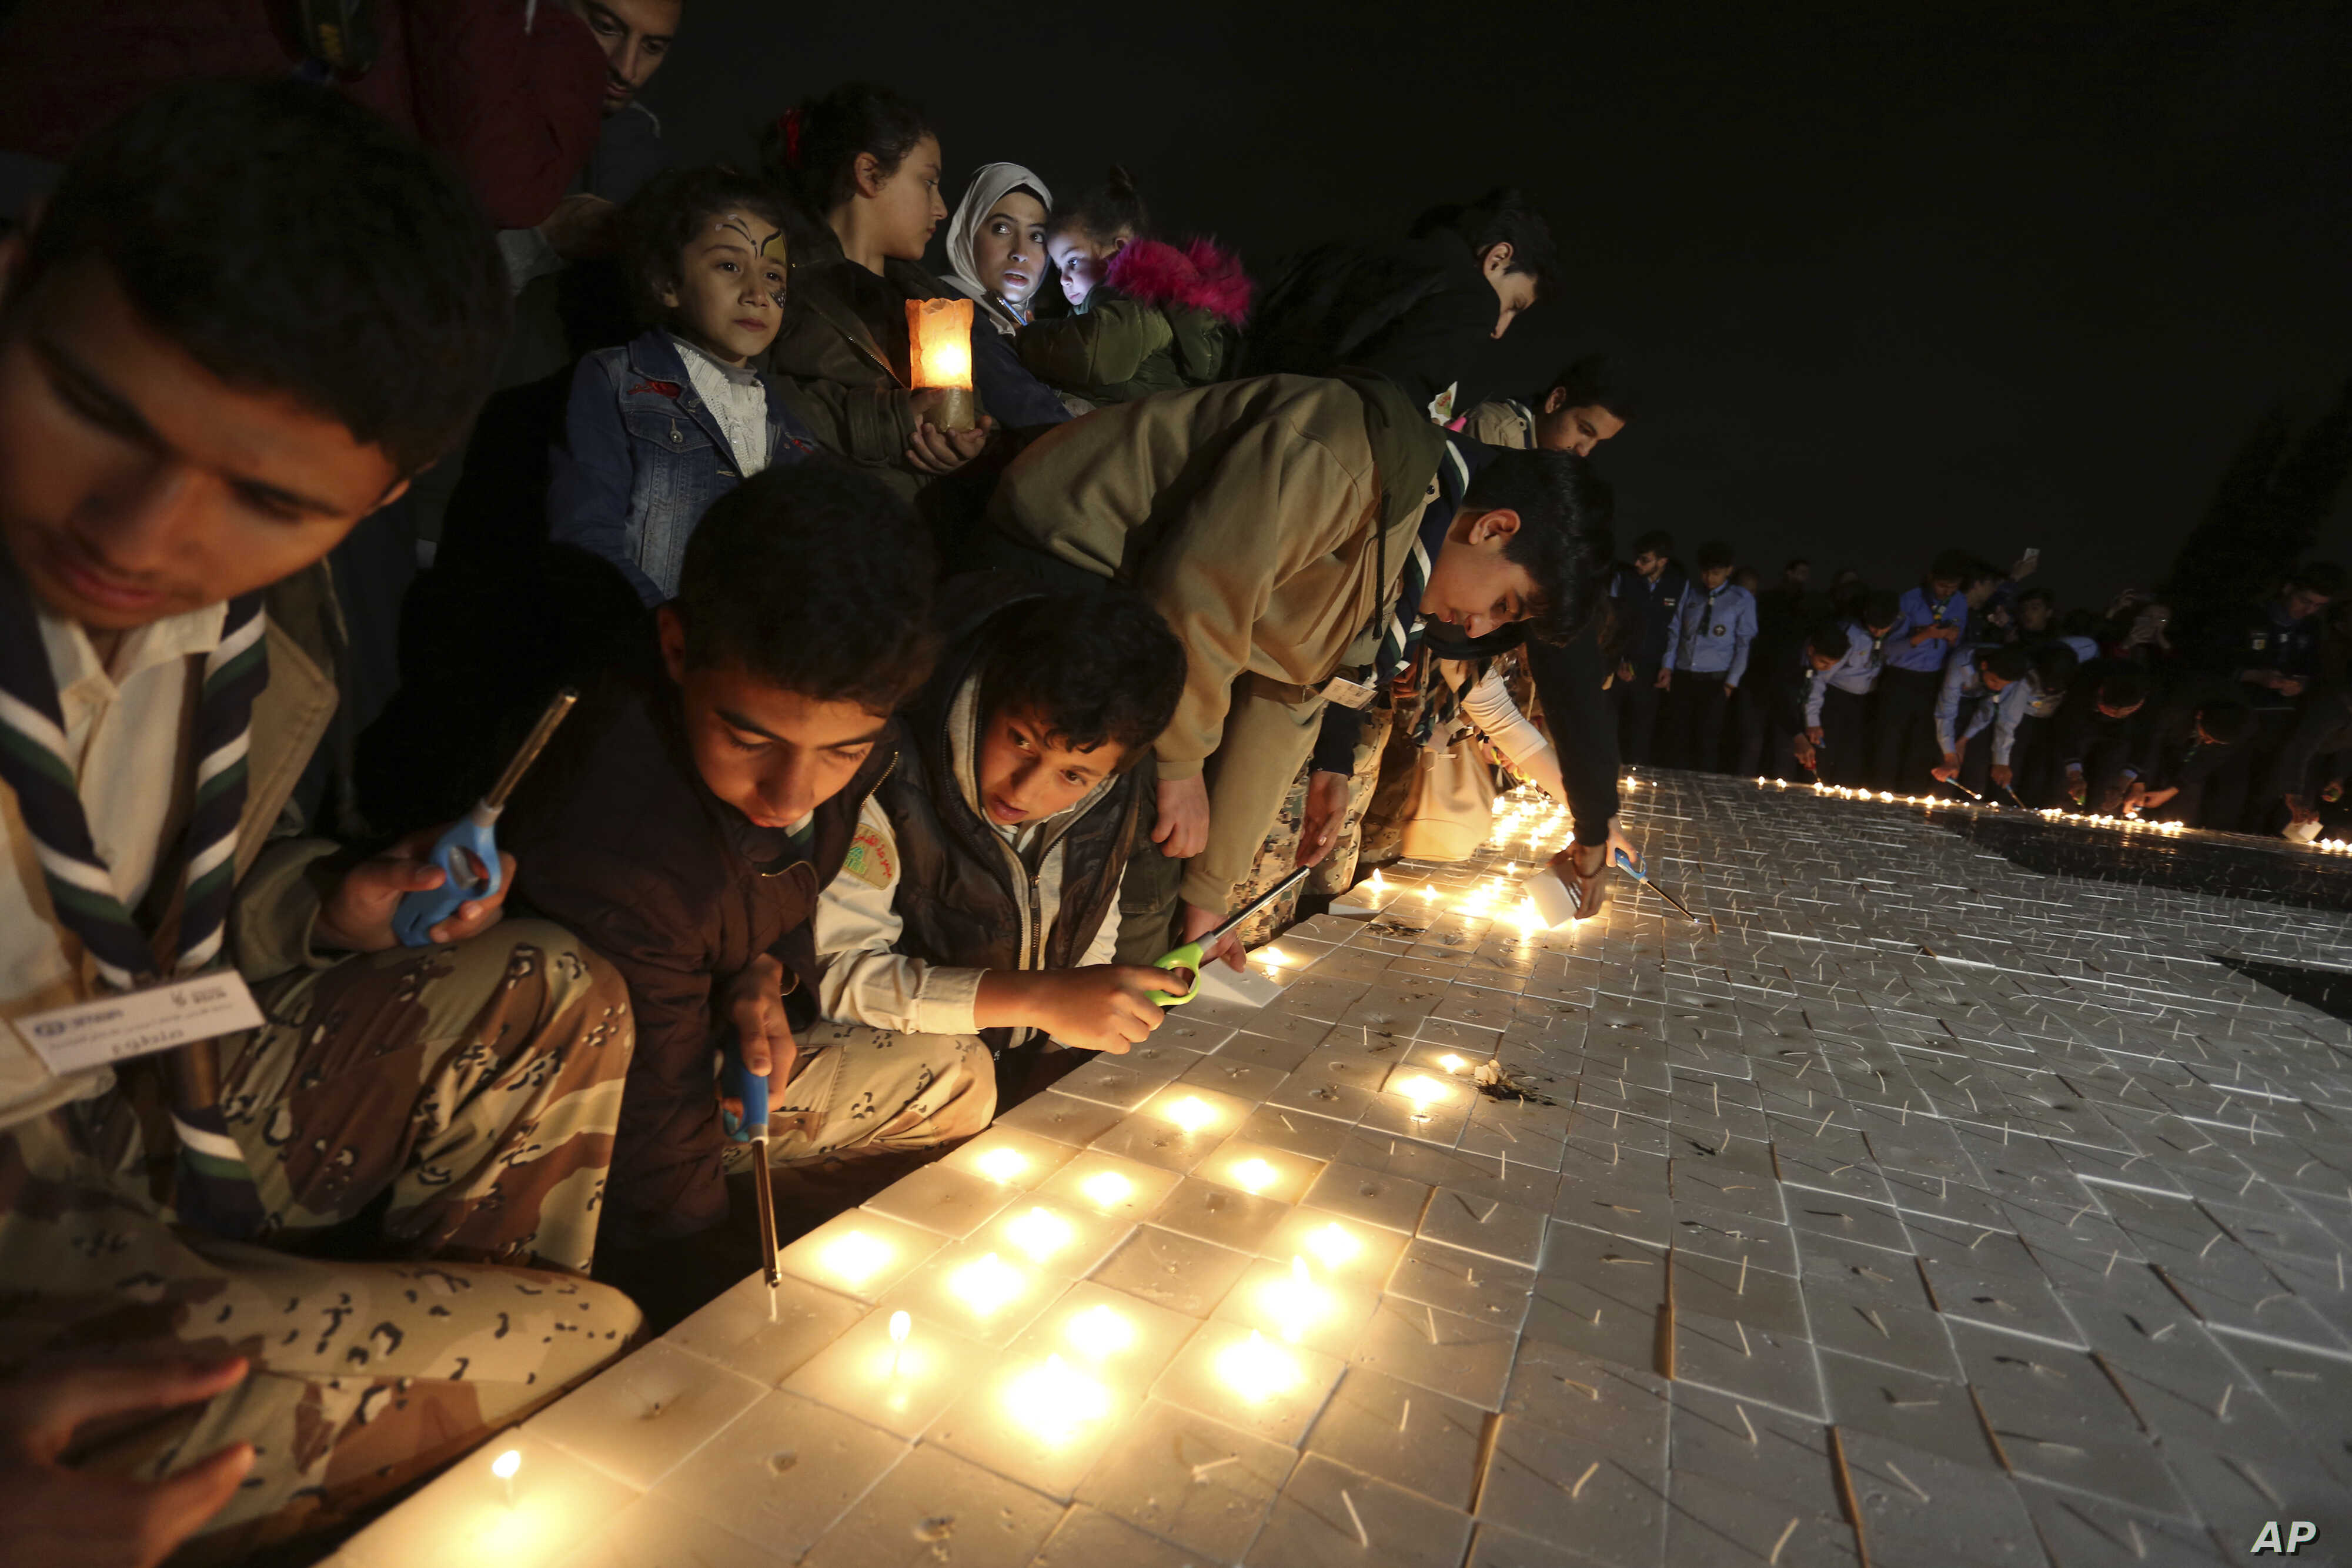 Jordanians light candles that form the Earth Hour logo, in an official attempt to be registered in the Guinness Book of Records for the largest candle-shaped World Hour logo, in Amman, Jordan, March 24, 2018.